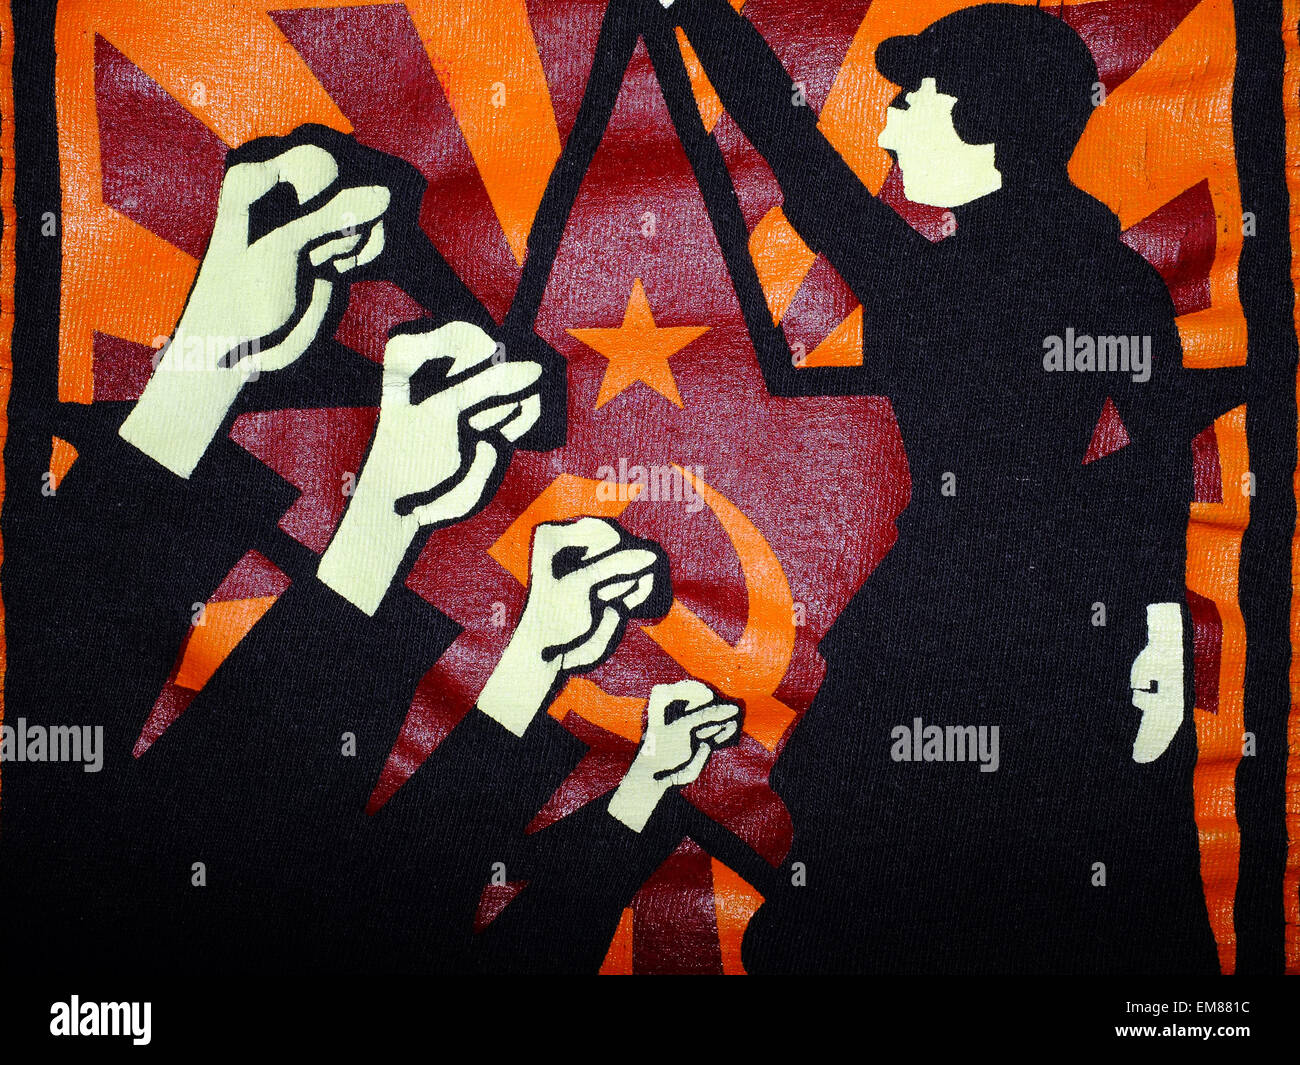 A Soviet style graphic Marxist Feminist image printed on a top. - Stock Image